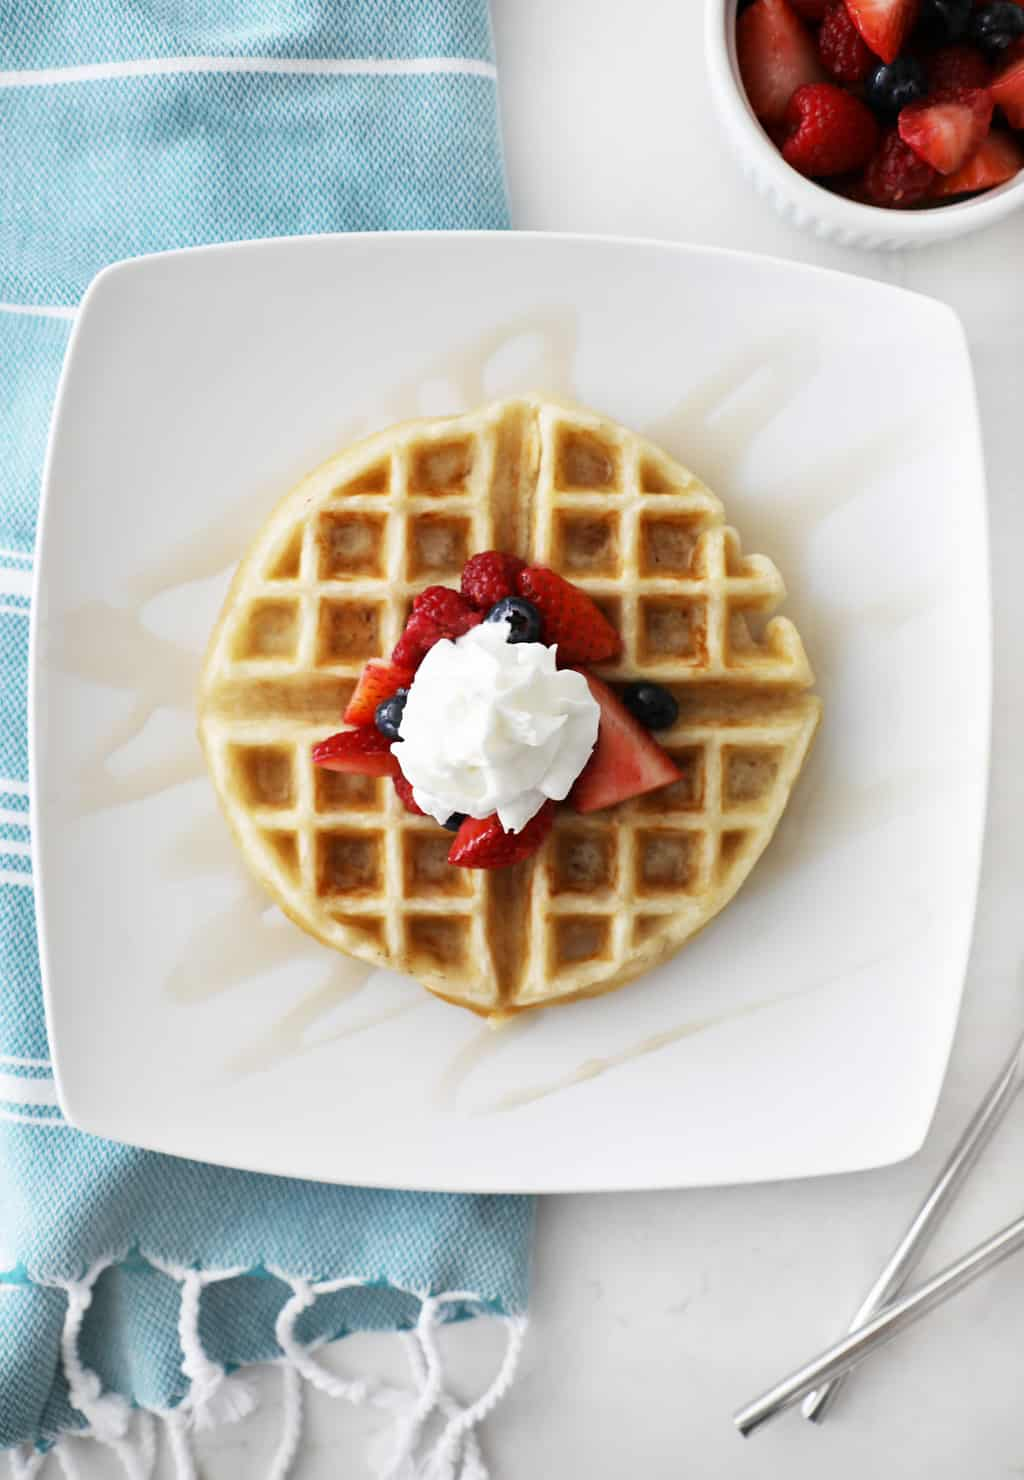 yeast waffle on a white plate with berries and whipped cream